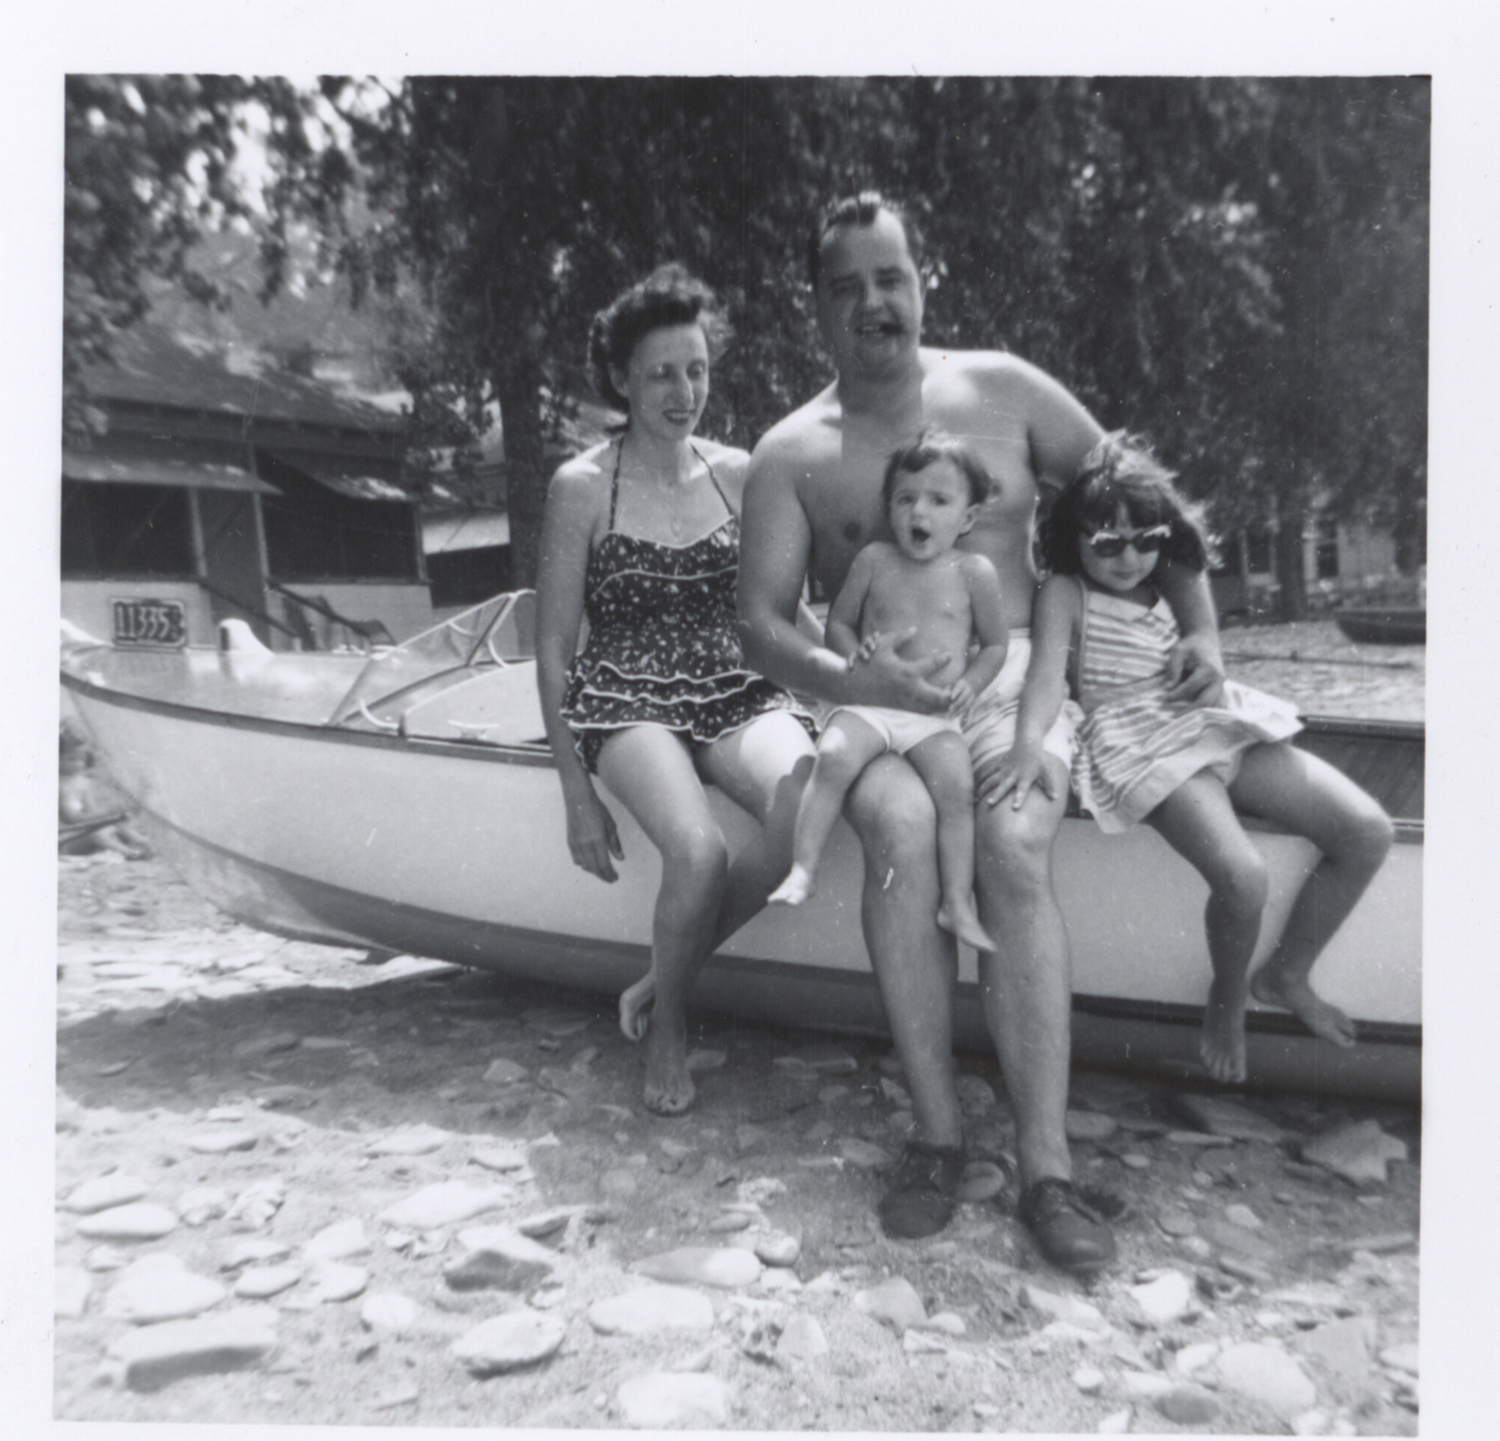 Ray and Louise Kins gather the kids for a picture with the boat, 1950s. Kins Family collection, MSS 20, Detre Library & Archives, Heinz History Center.